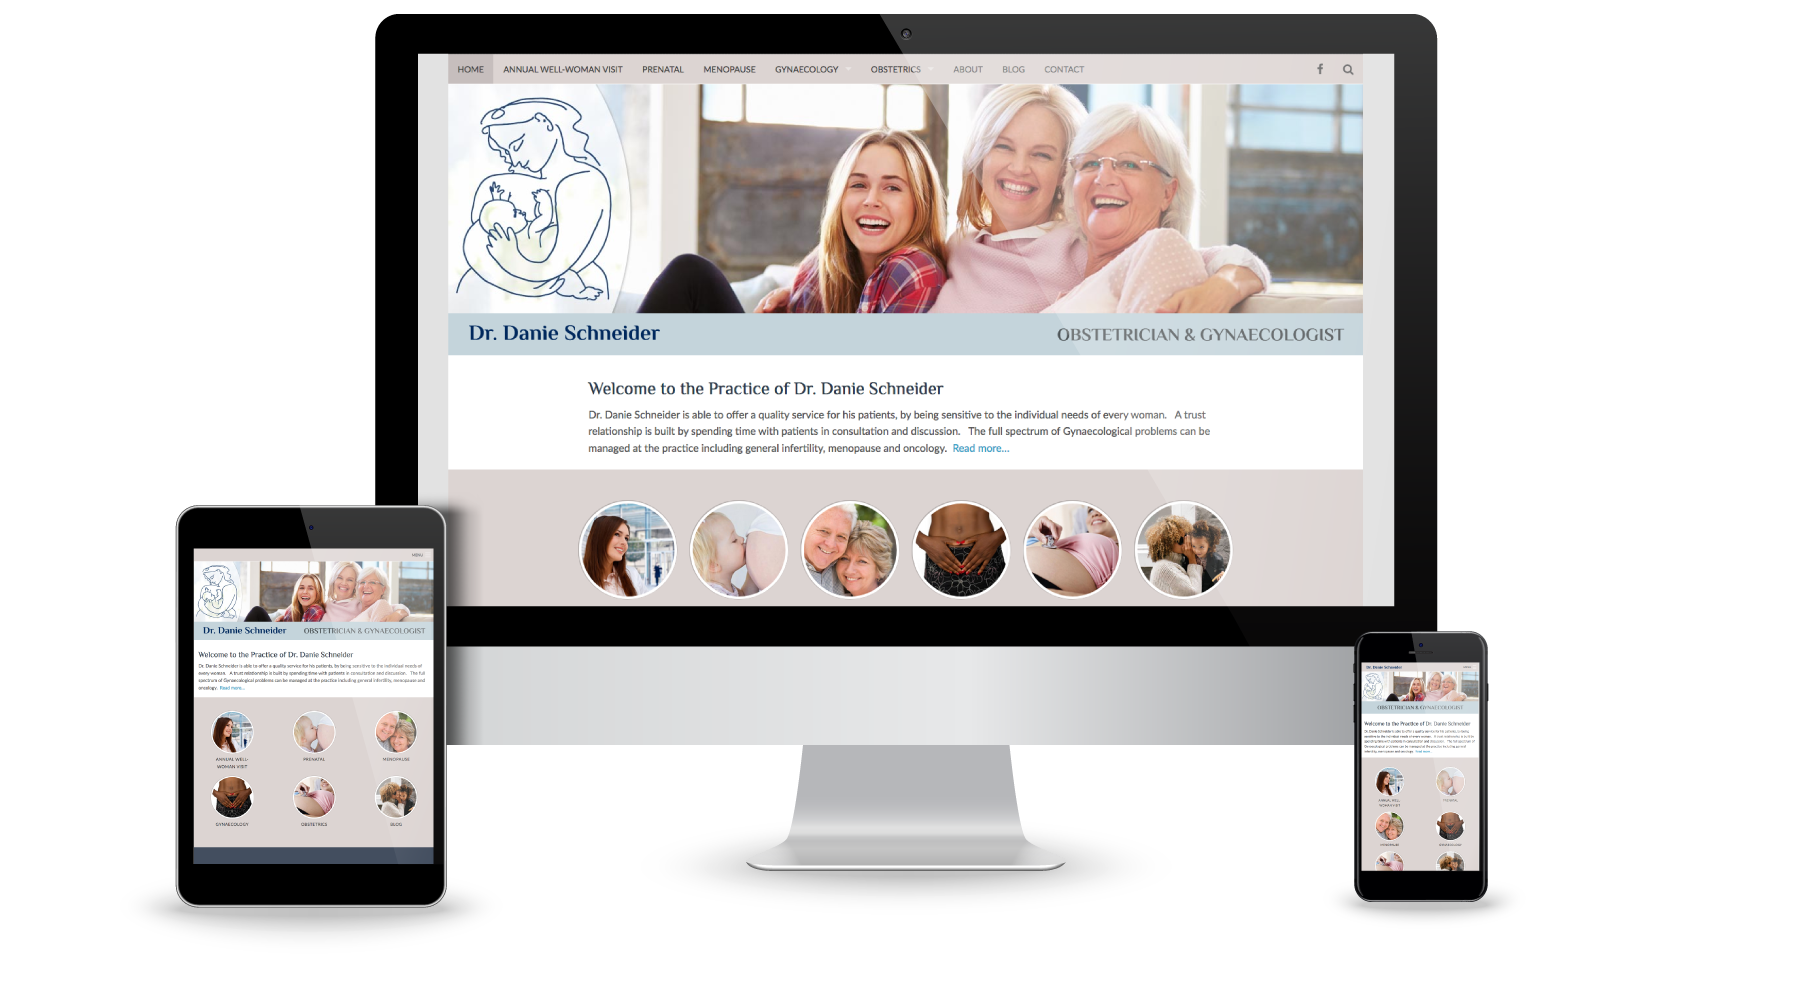 WordPress website for Dr. Danie Schneider